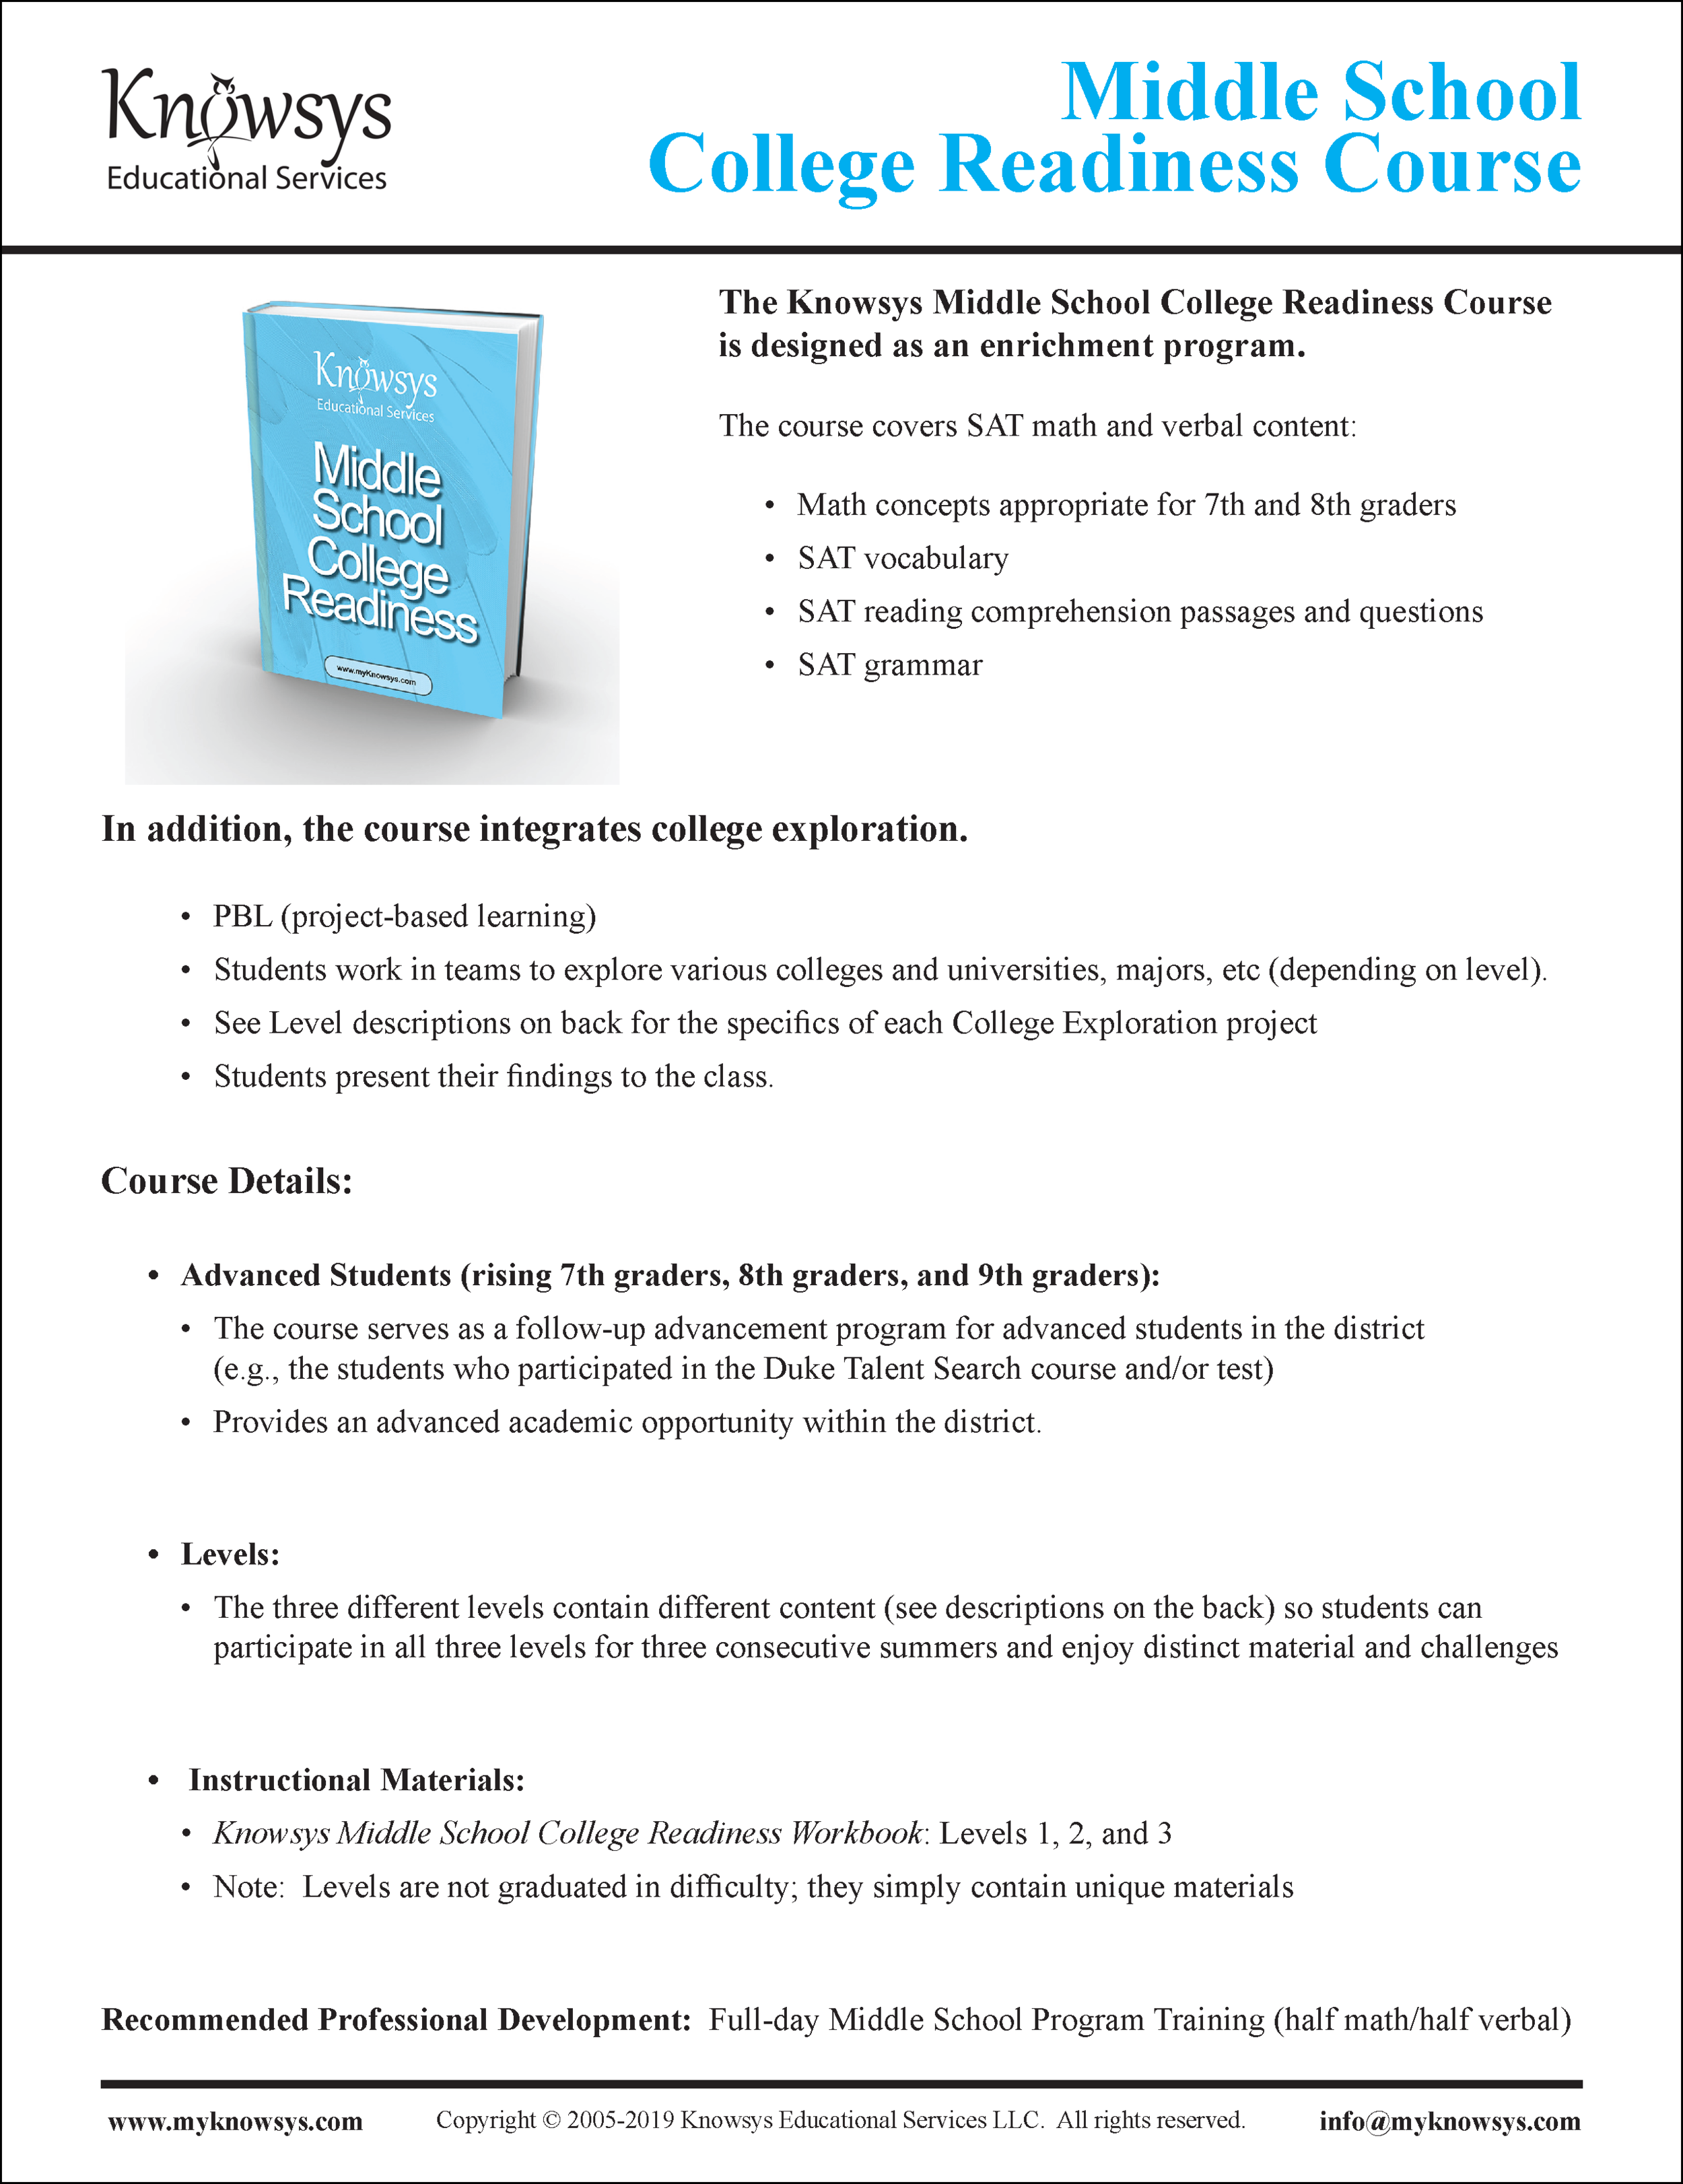 Middle School College Readiness Curriculum Overview